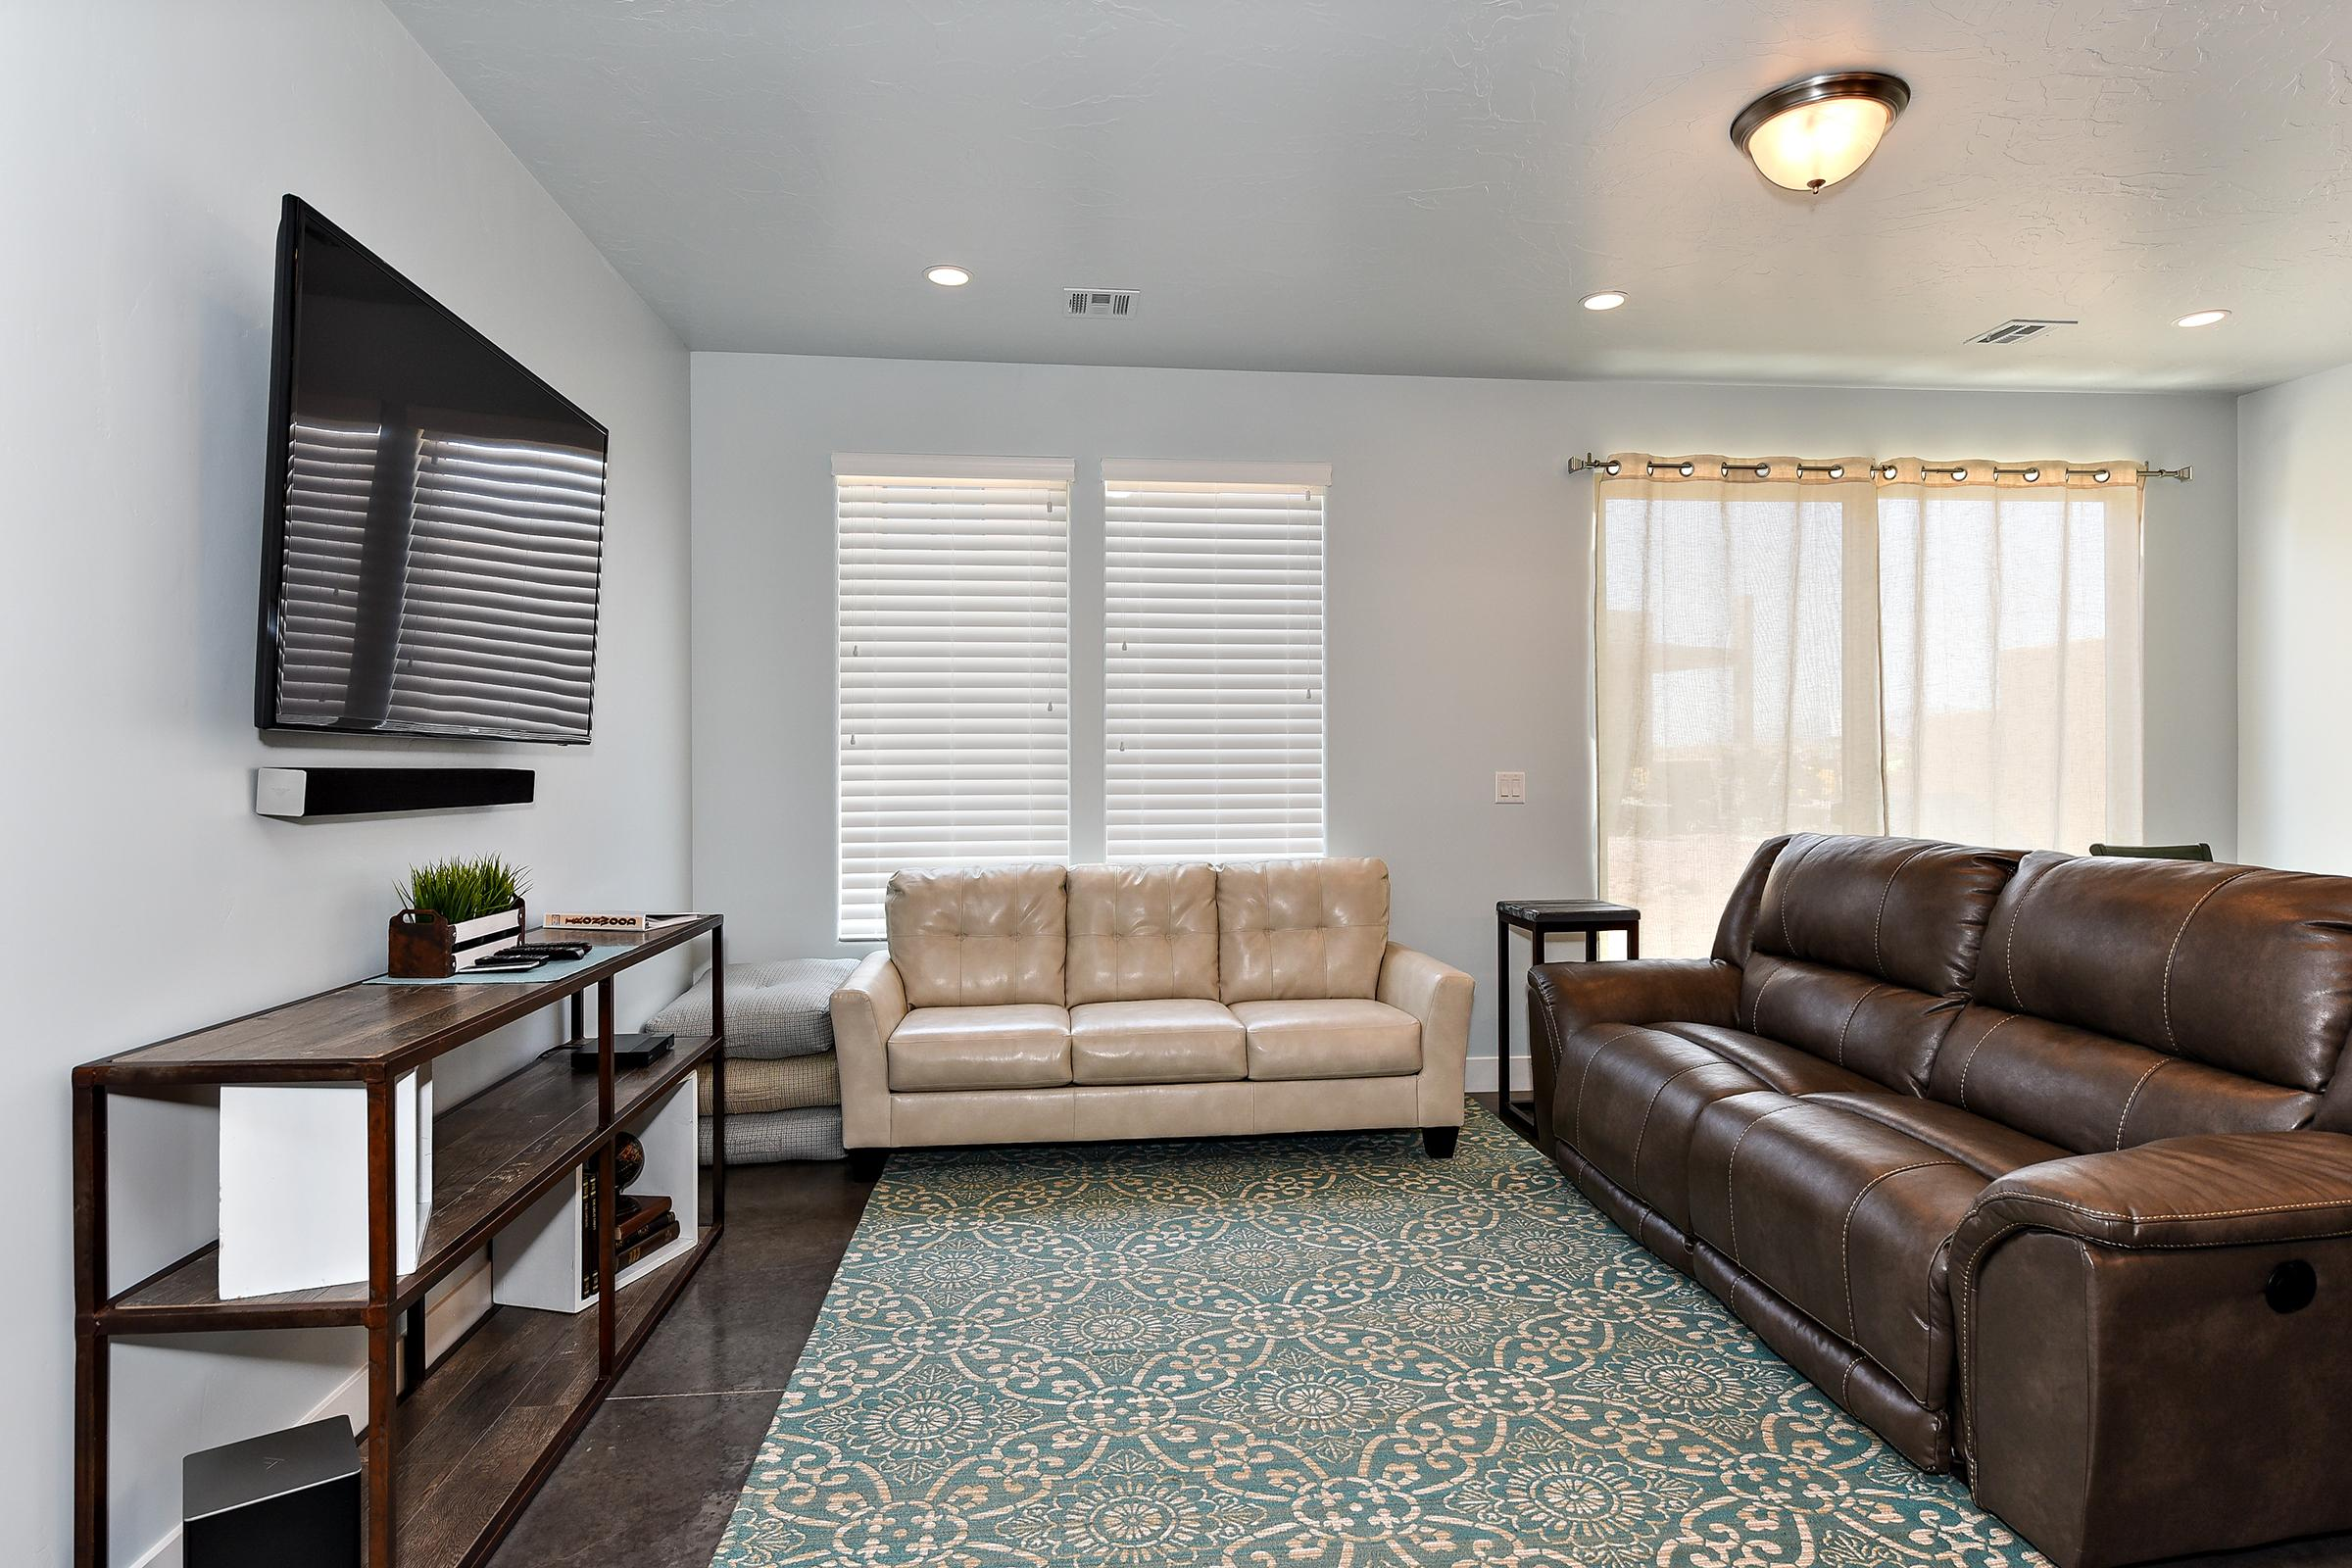 The Living Room is located adjacent to the Dining Room and is the perfect place to relax and watch your favorite movie or TV program.